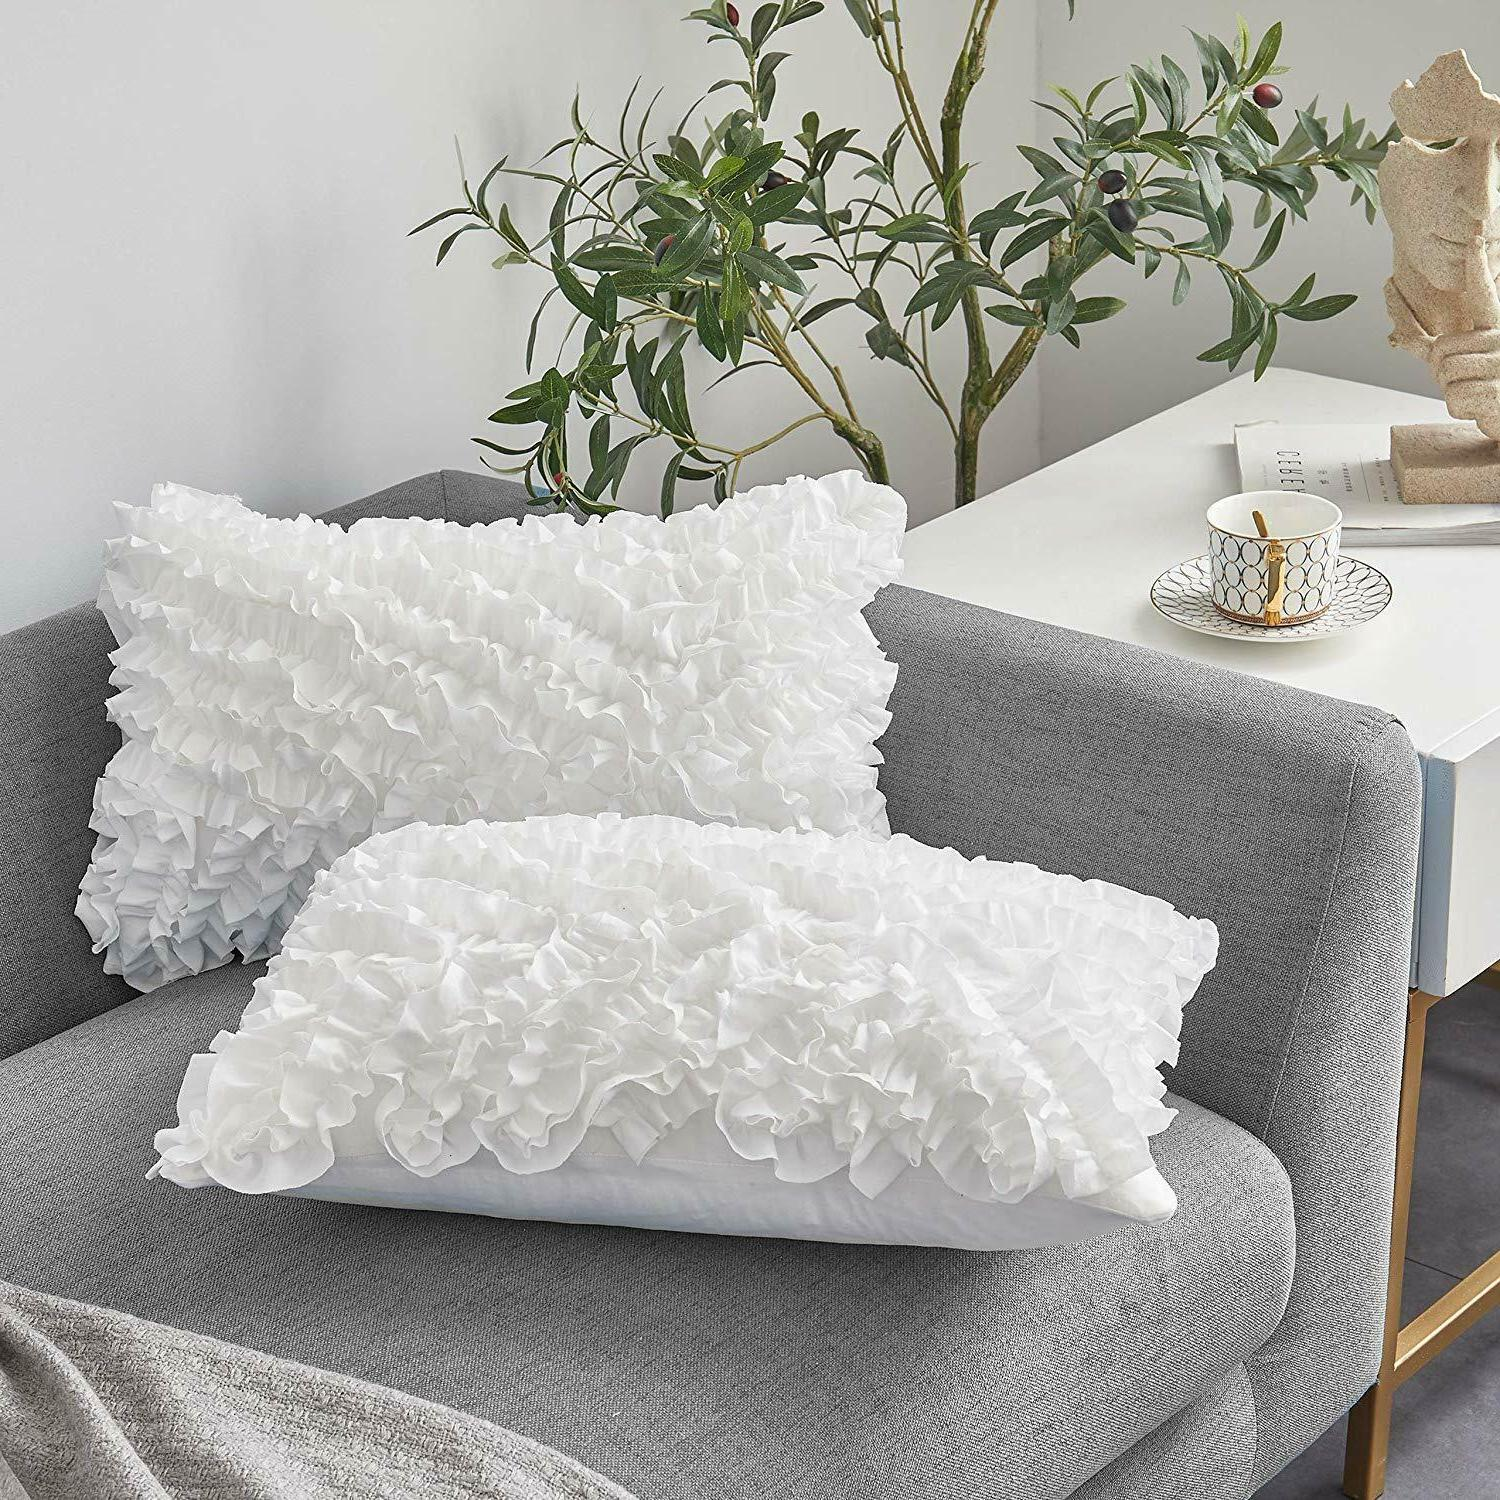 decorative throw pillow covers set of 2